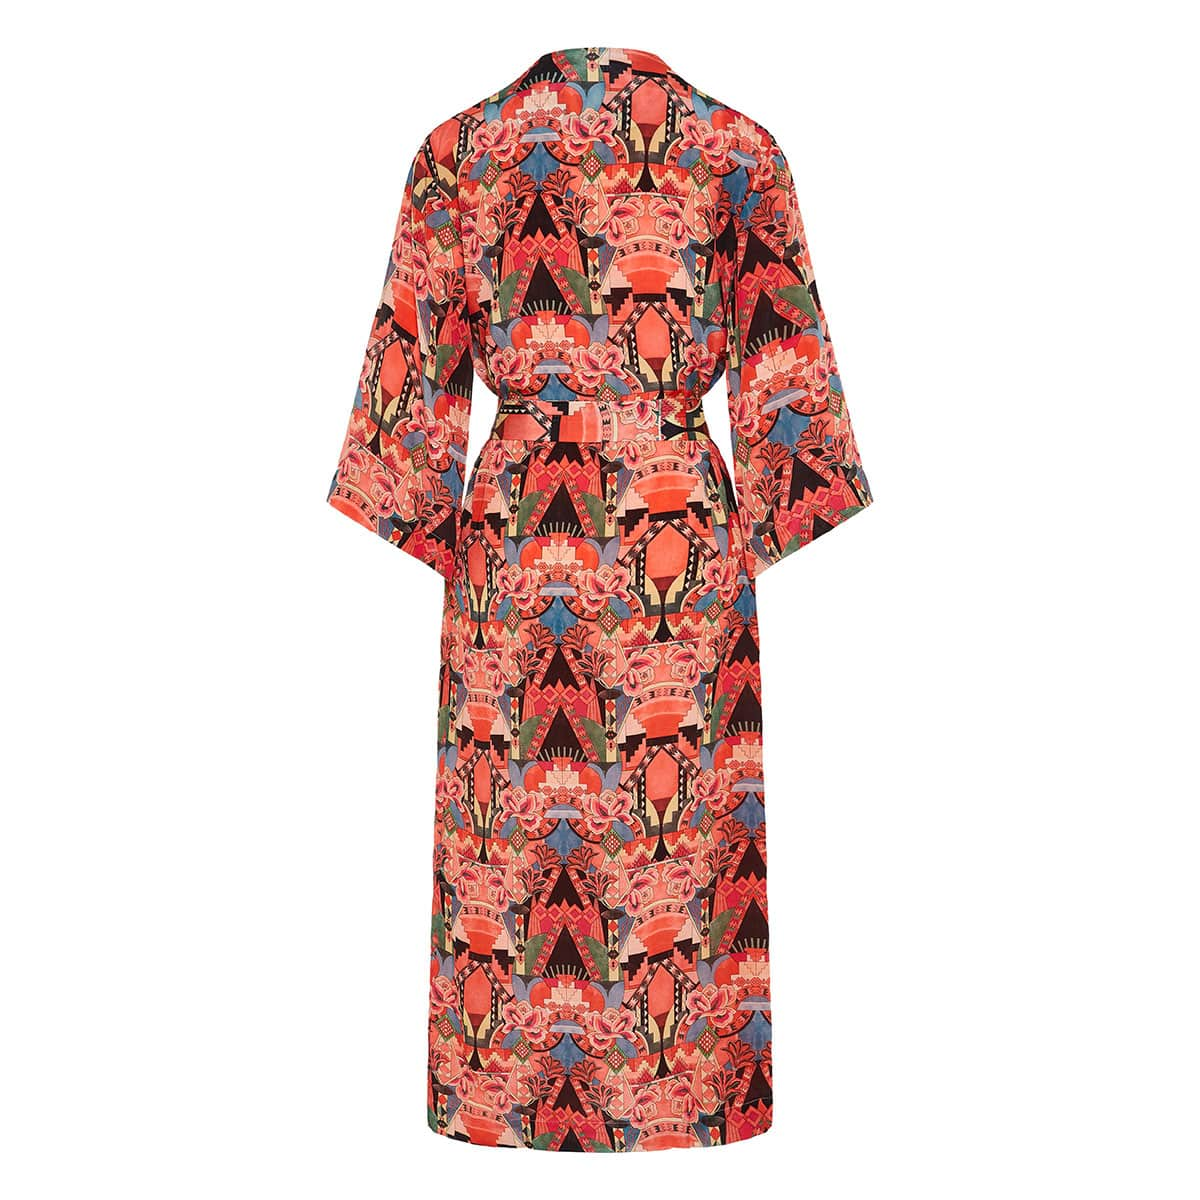 Printed midi robe dress